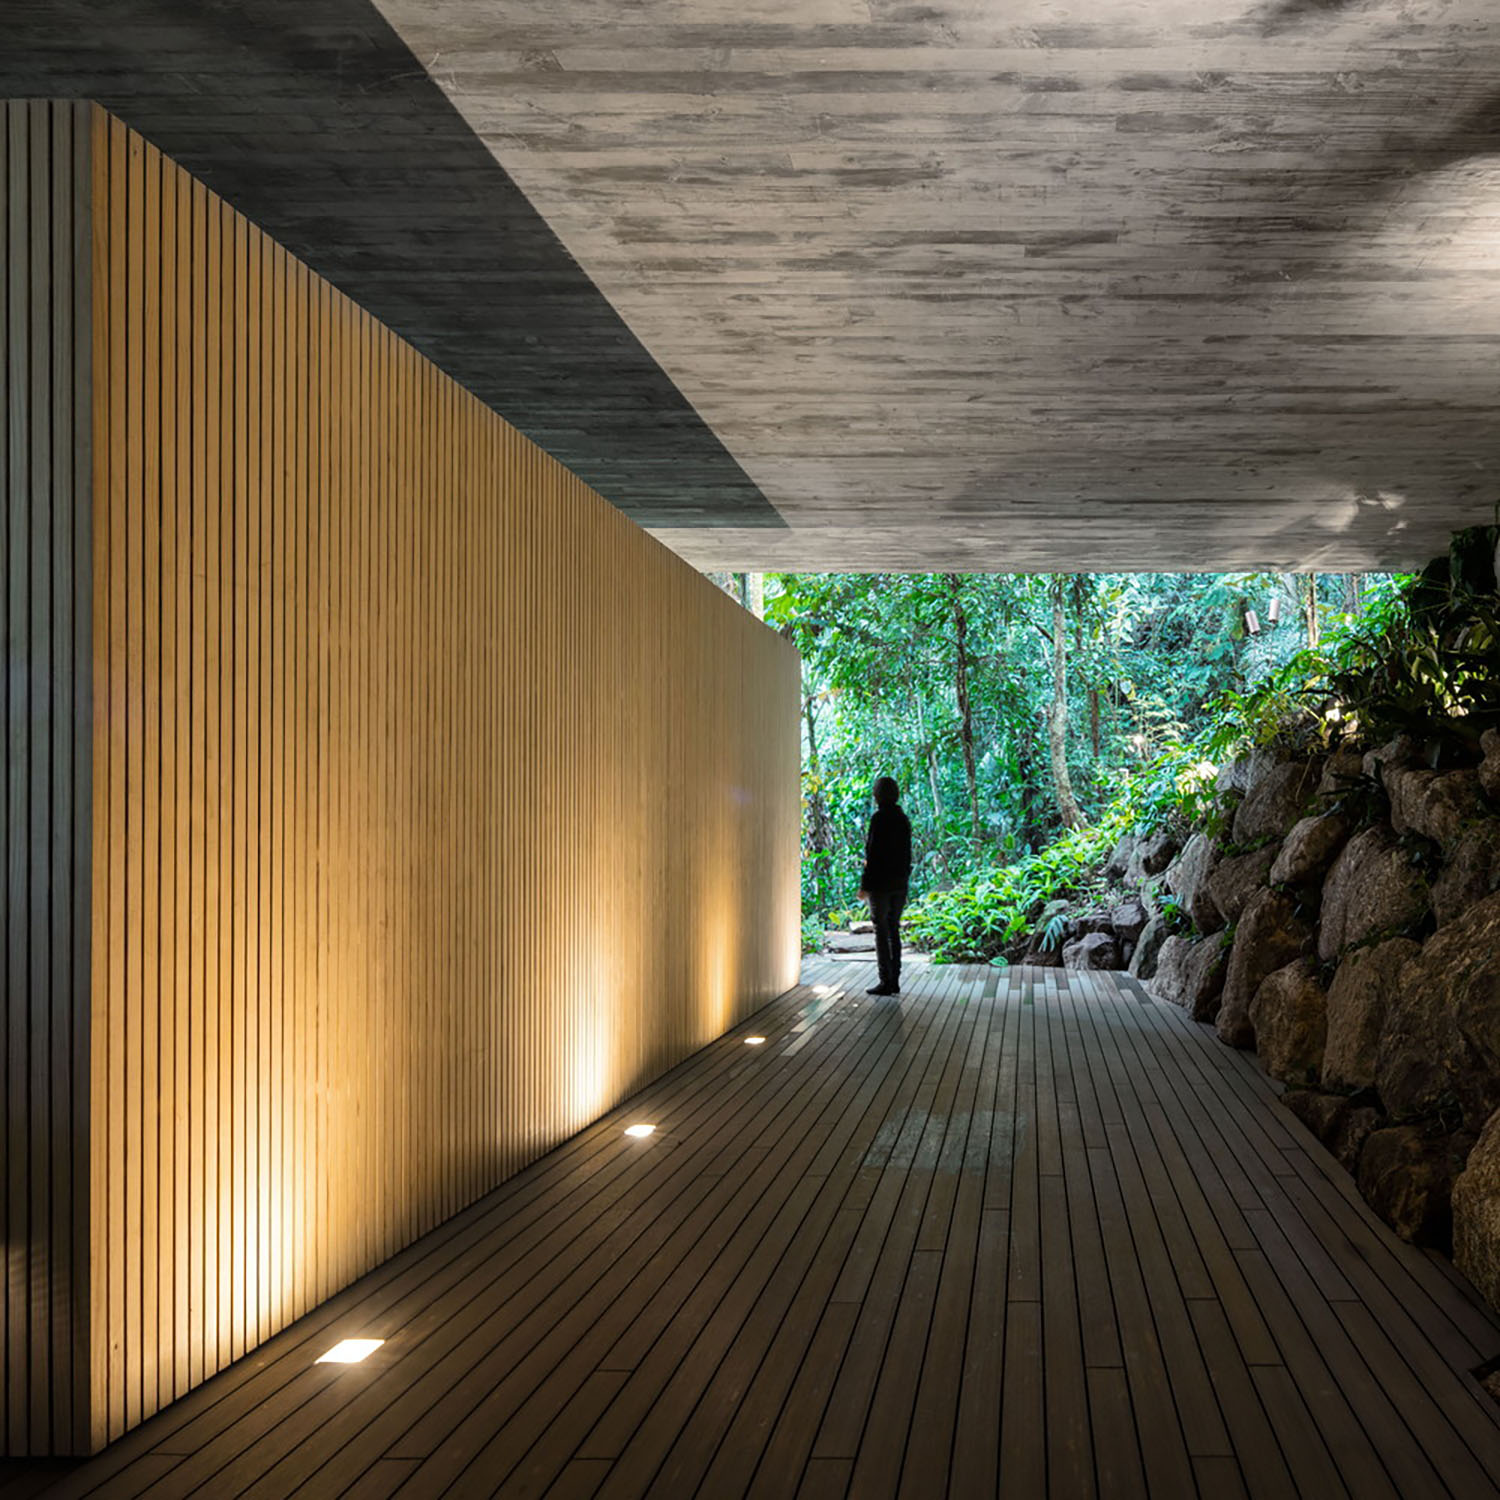 mm_Jungle House  design by Studiomk27 - Marcio Kogan + Samanta Cafardo_19